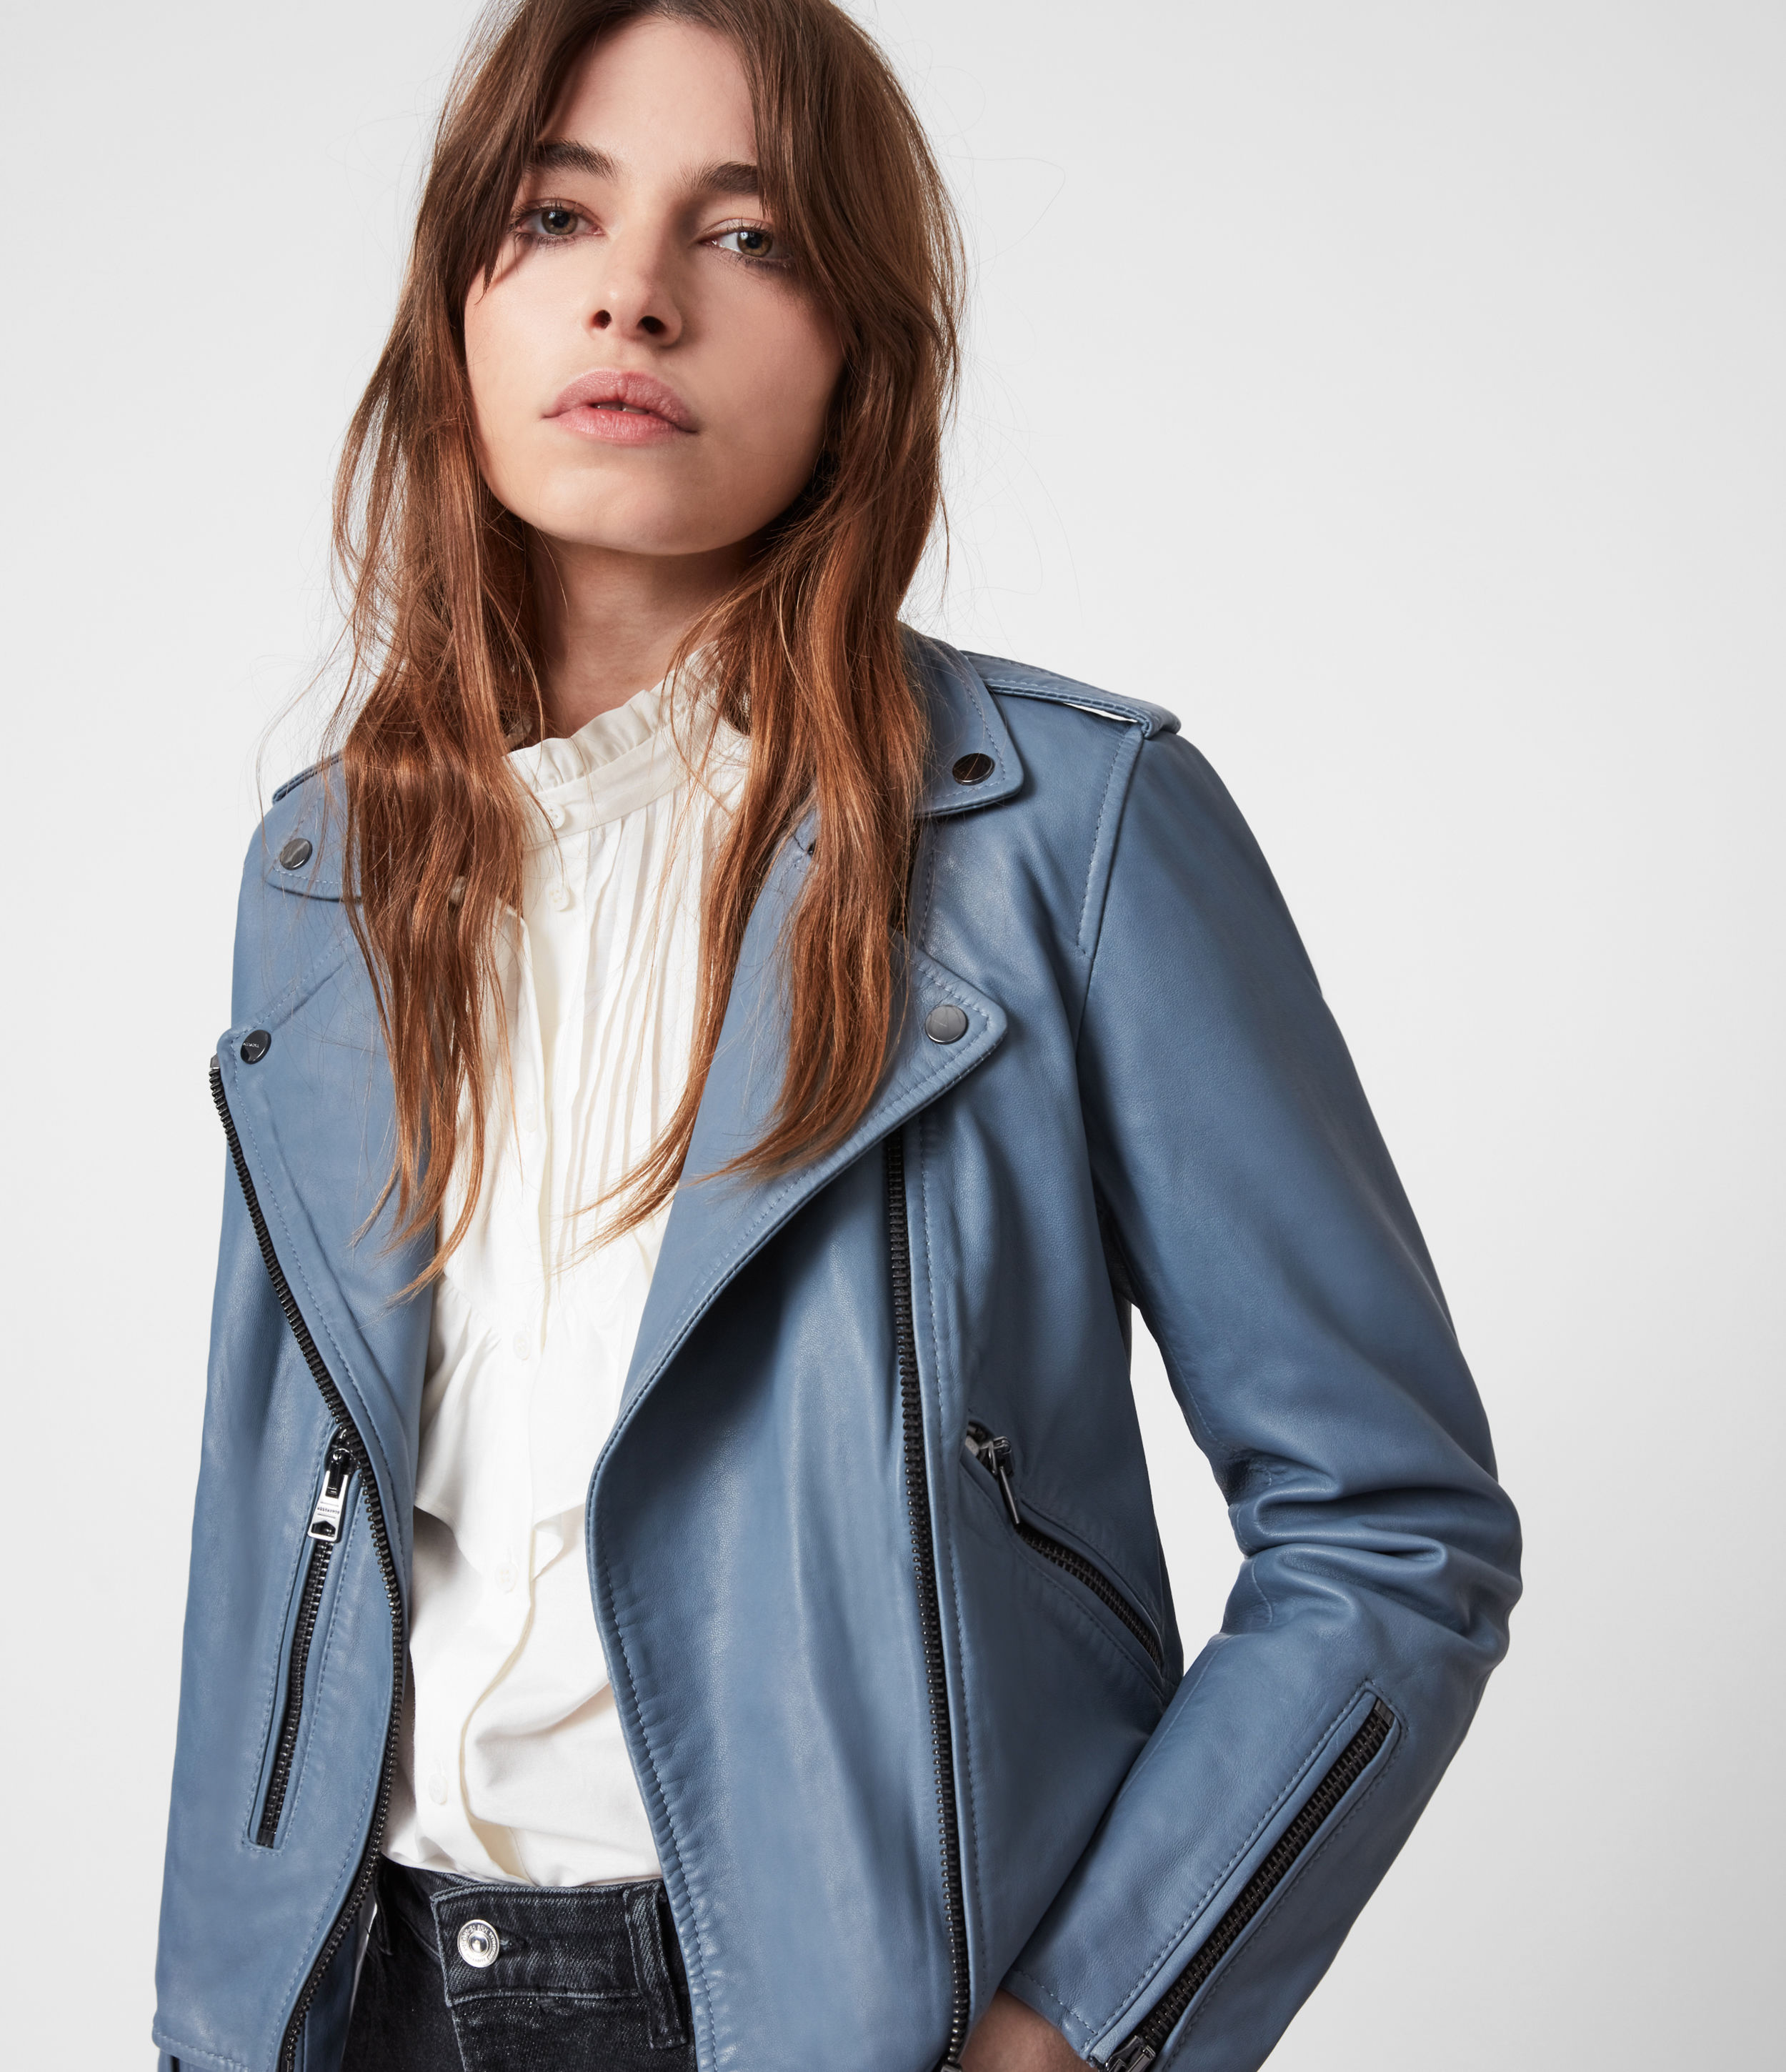 AllSaints Womens Fern Leather Biker Jacket, Flint Blue, Size: 6